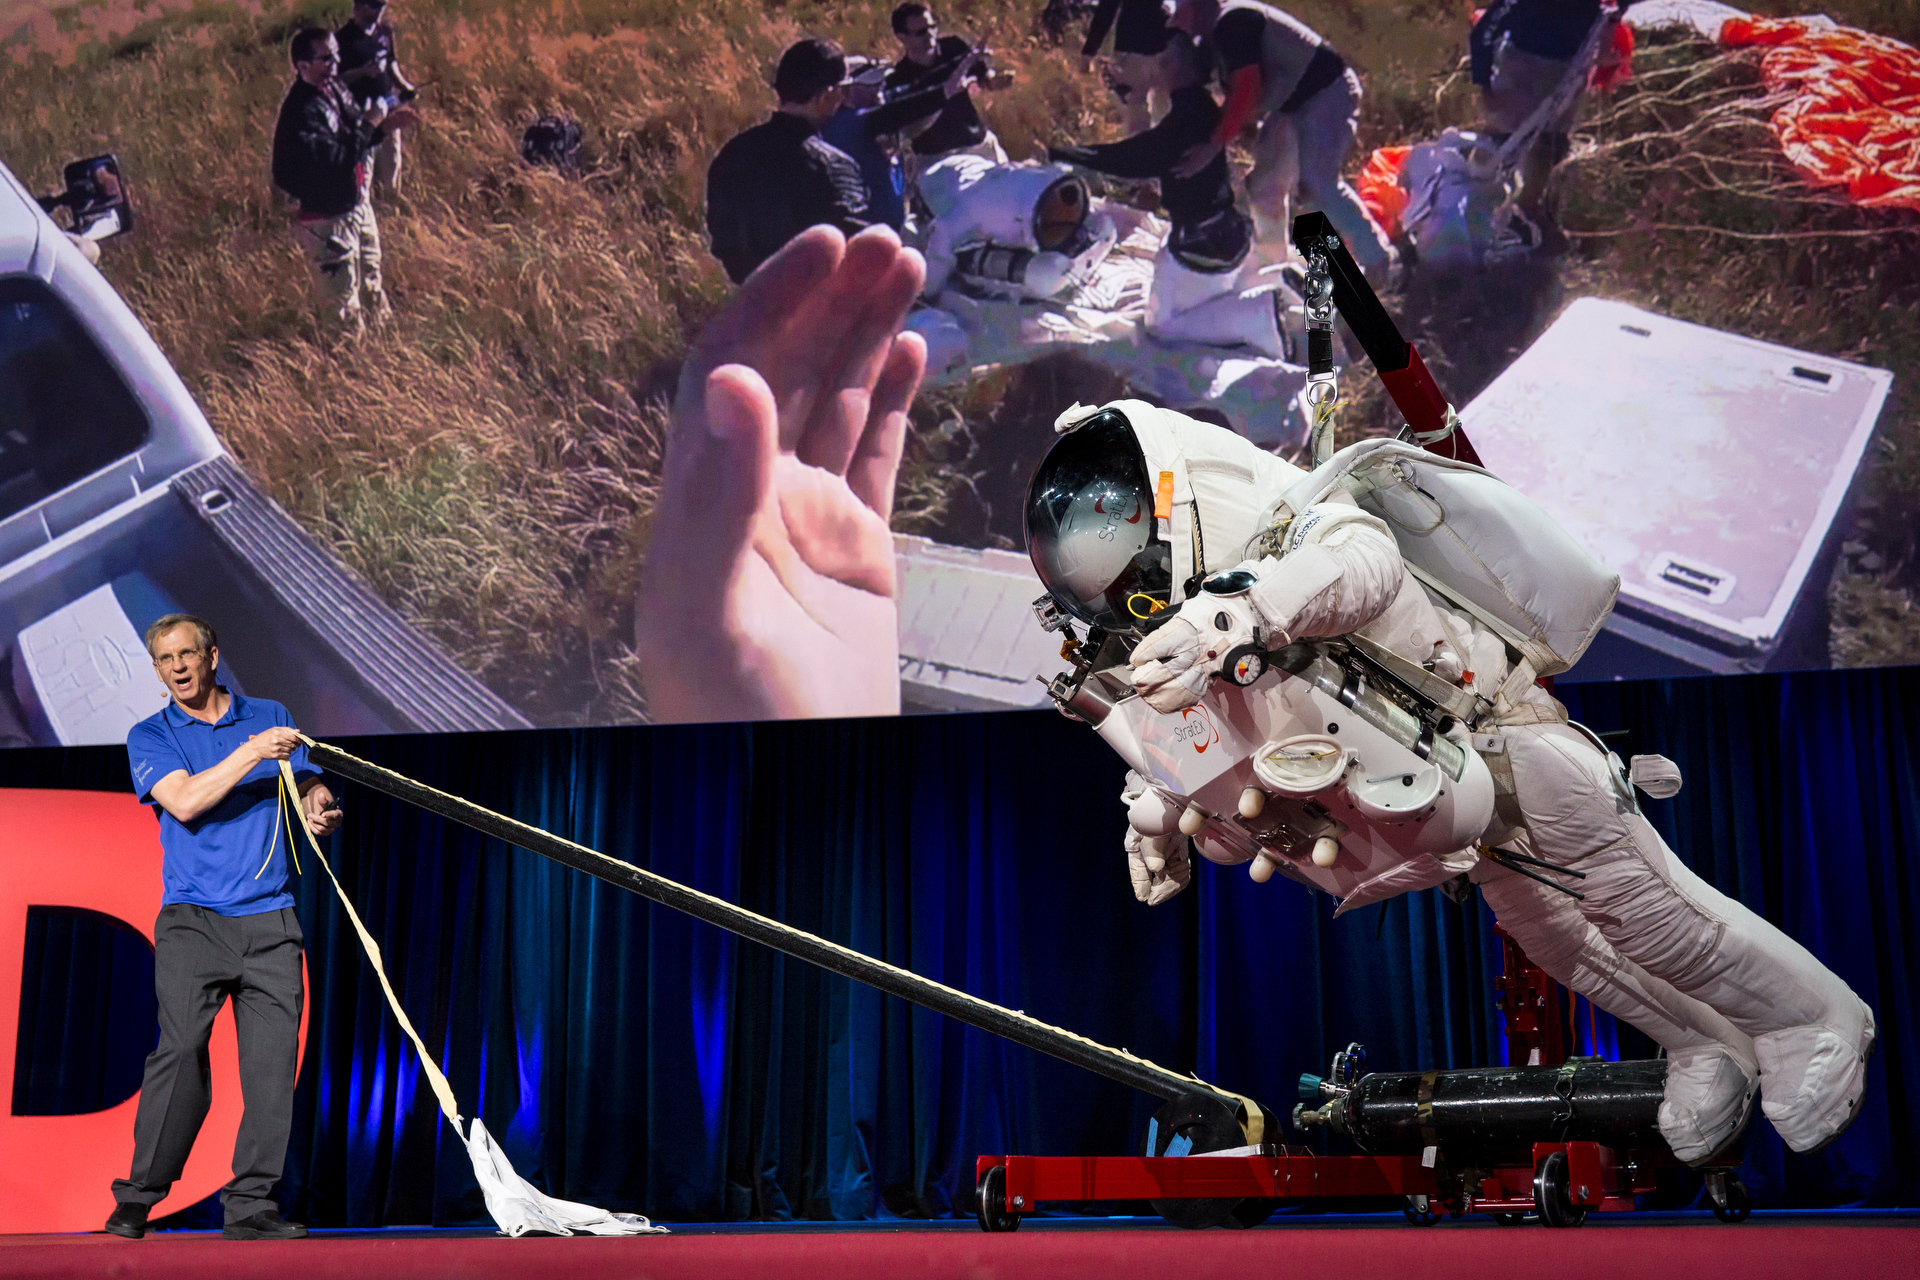 Alan Eustace demonstrates a clever feature on his stratosphere suit, a cord that forms a tube as it's pulled. This little design feature made sure he didn't get tangled in his parachute as he beat Felix Baumgartner's record. Photo: James Duncan Davidson/TED